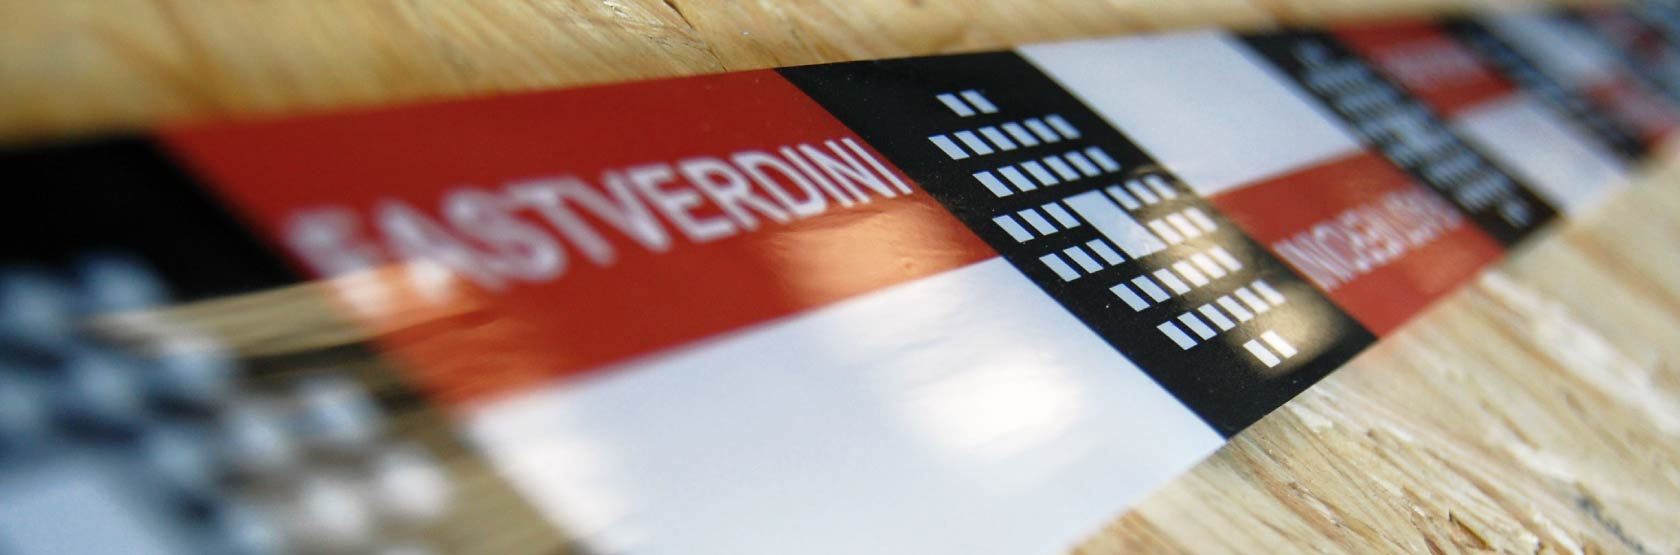 rcd-fastverdini-label